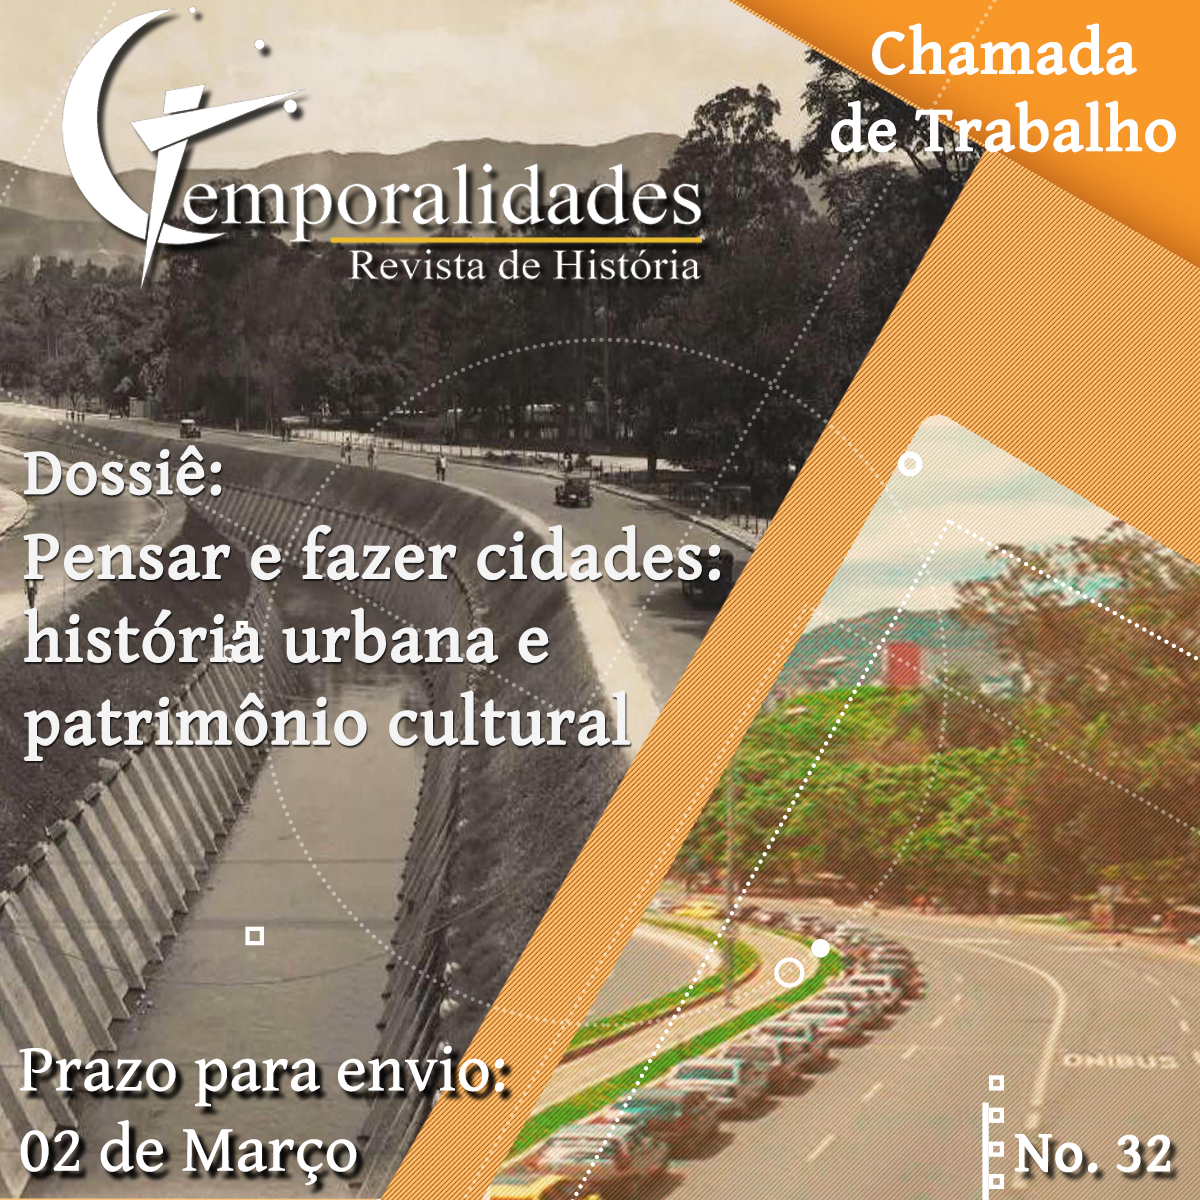 Chamada_ED_32_Facebook_PNG1.png